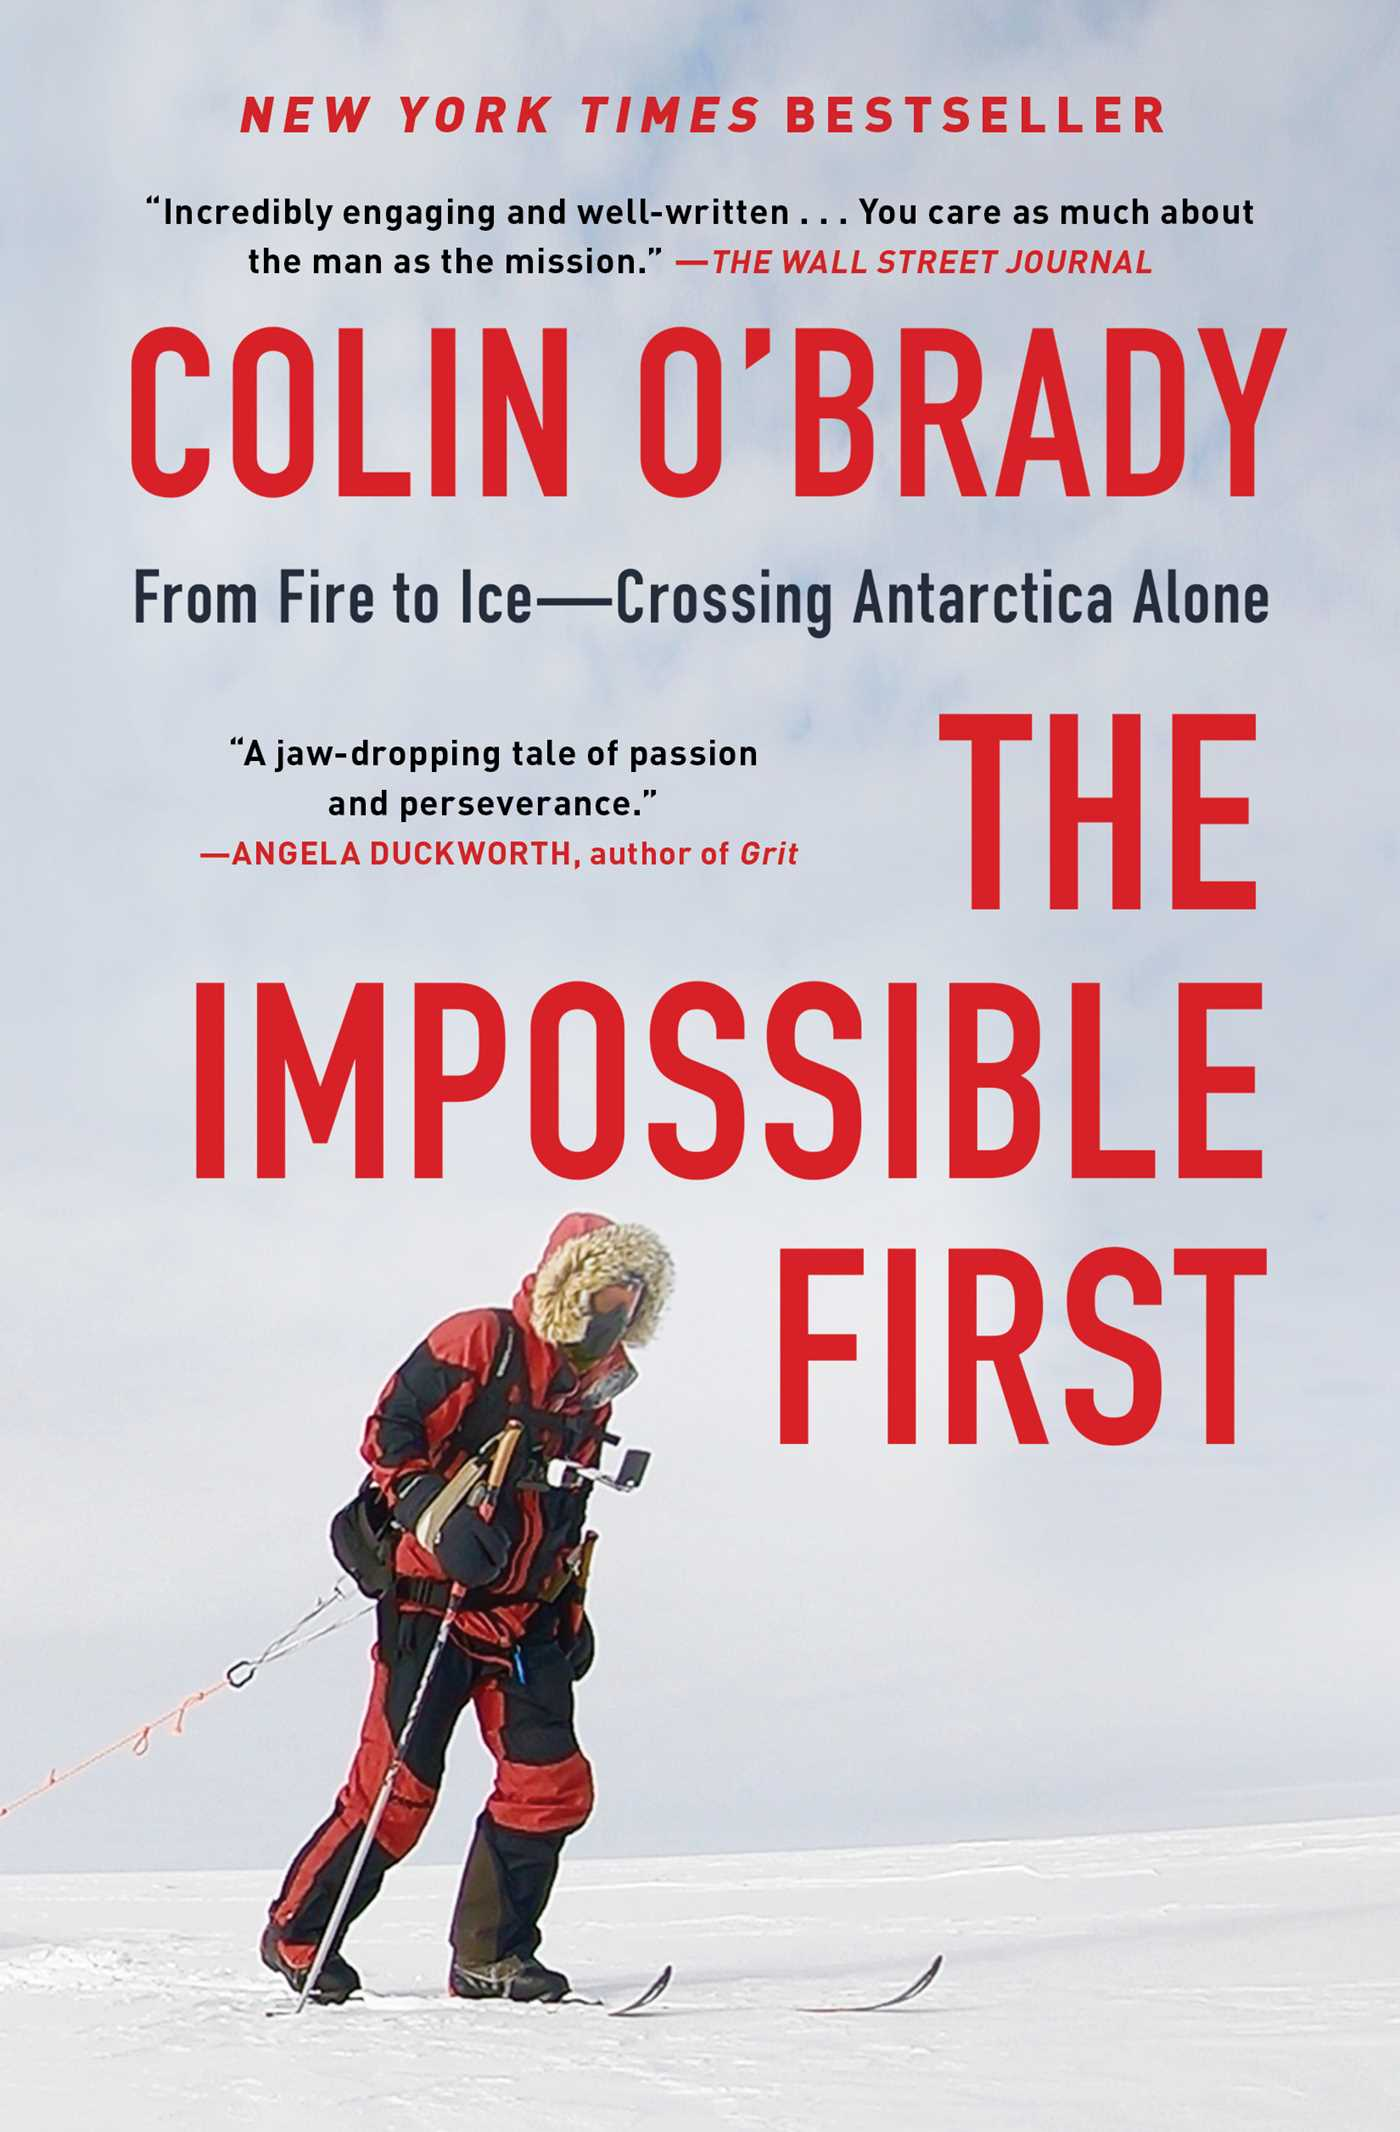 The Impossible First From Fire to Ice—Crossing Antarctica Alone